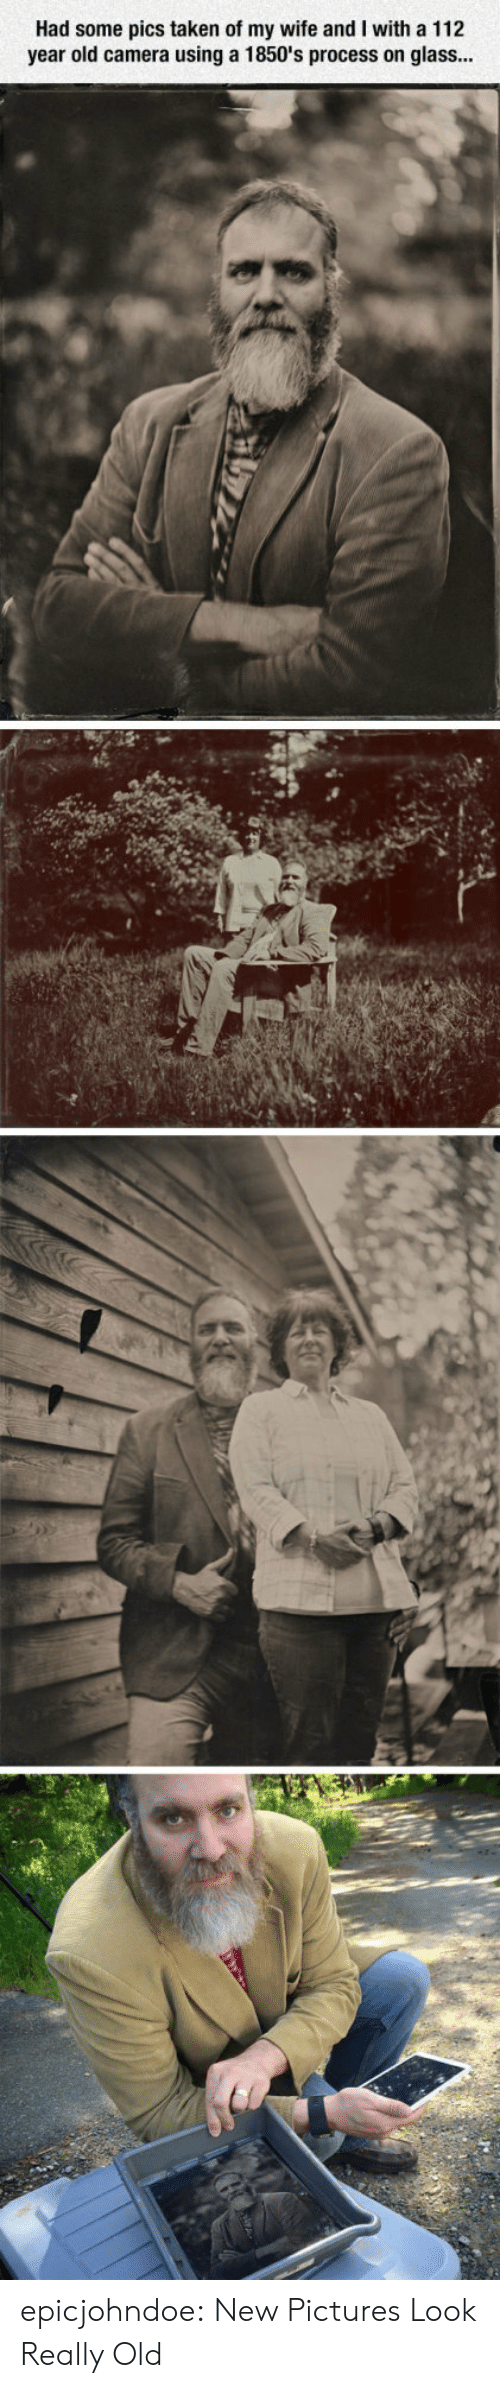 Taken, Tumblr, and Blog: Had some pics taken of my wife and I with a 112  year old camera using a 1850's process on glass... epicjohndoe:  New Pictures Look Really Old